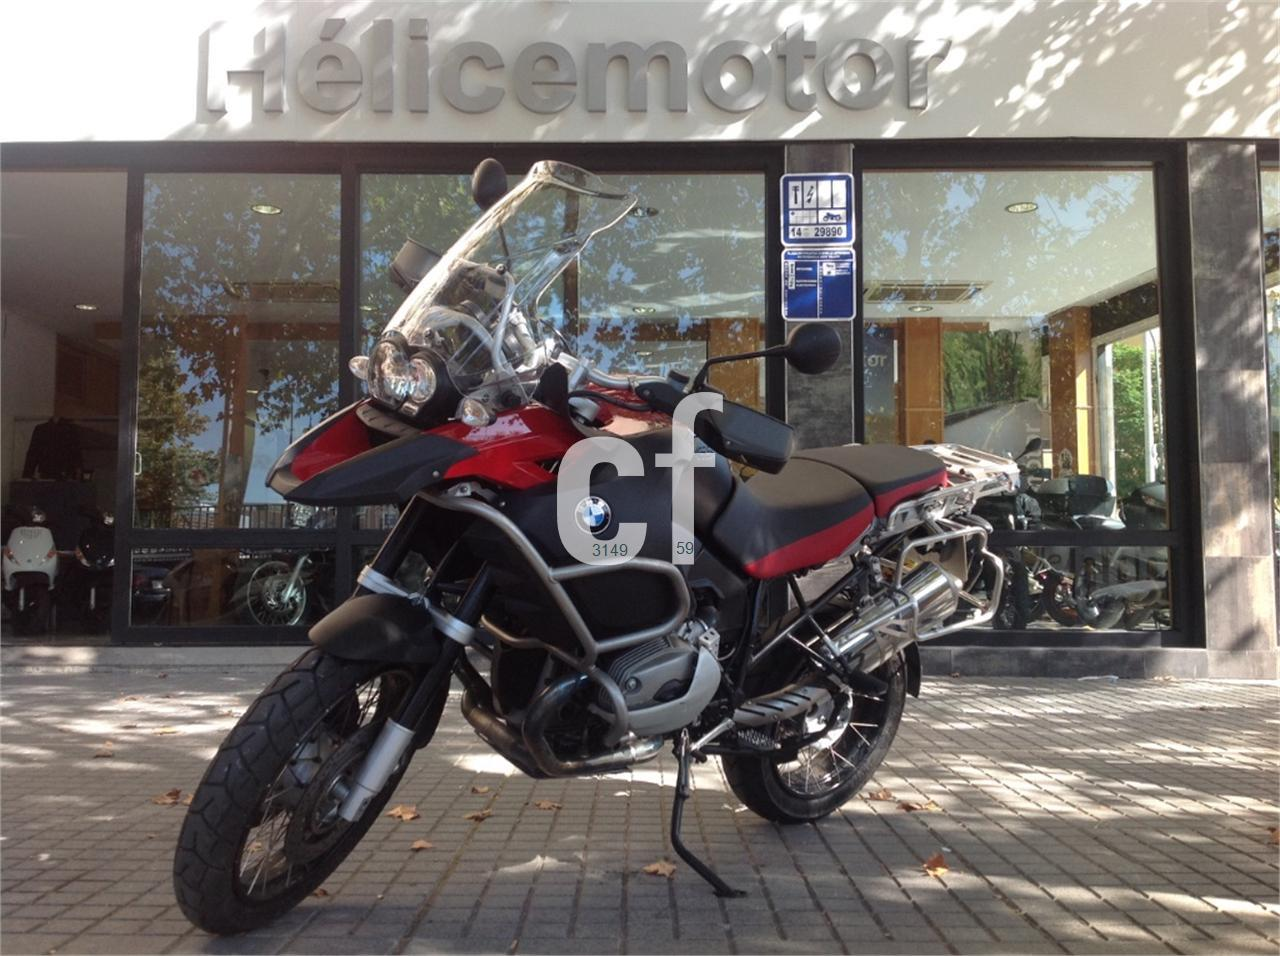 BMW R 1200 GS Adventure 105cv de venta